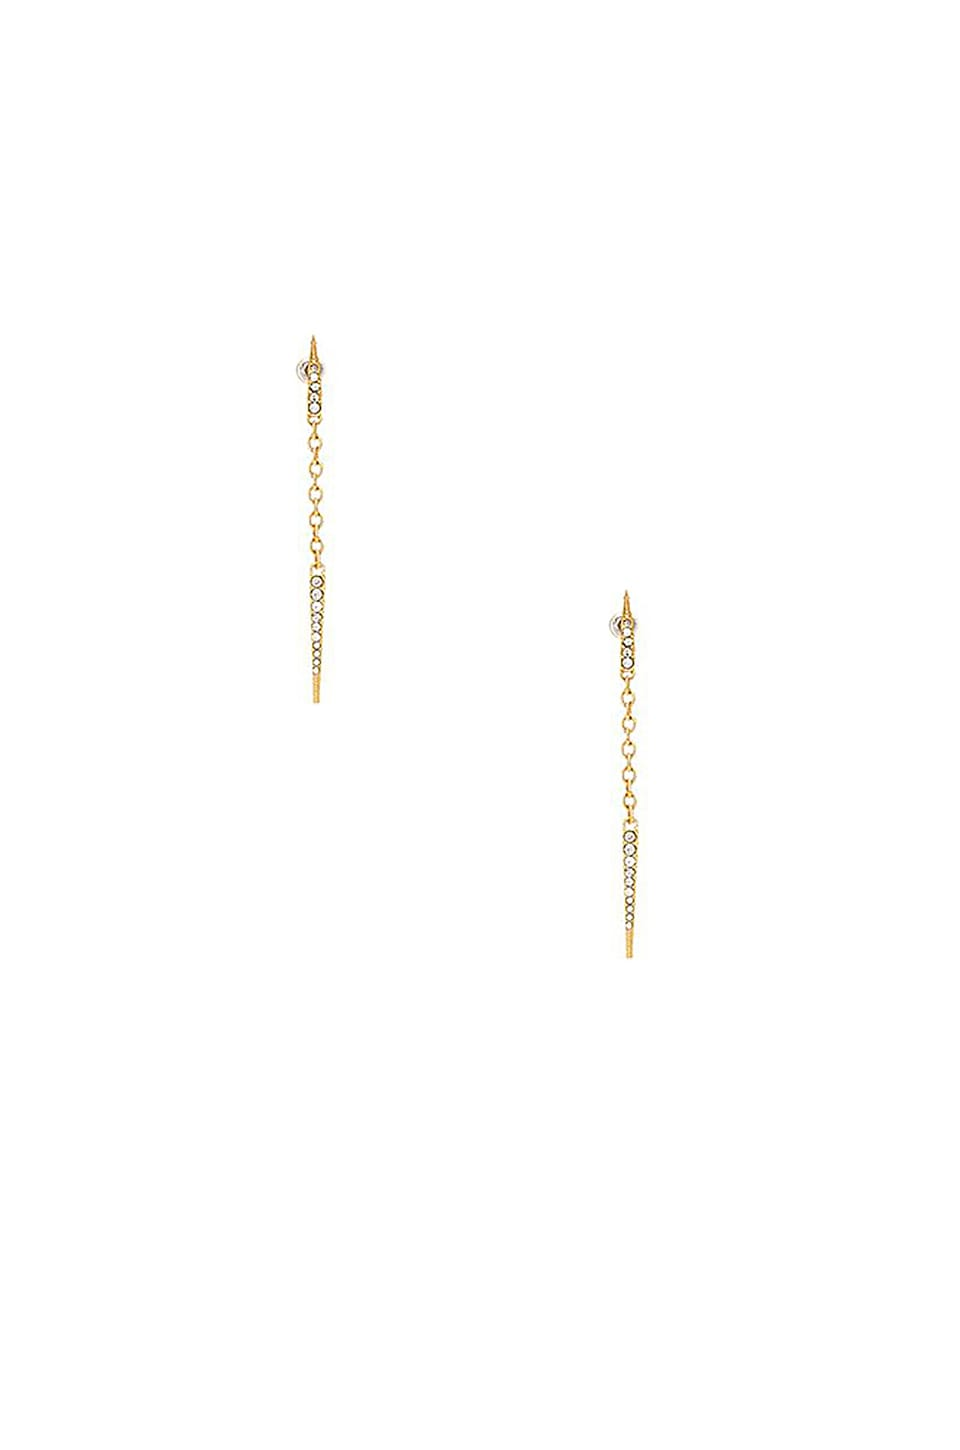 Elizabeth Cole Sloan Earrings in Gold